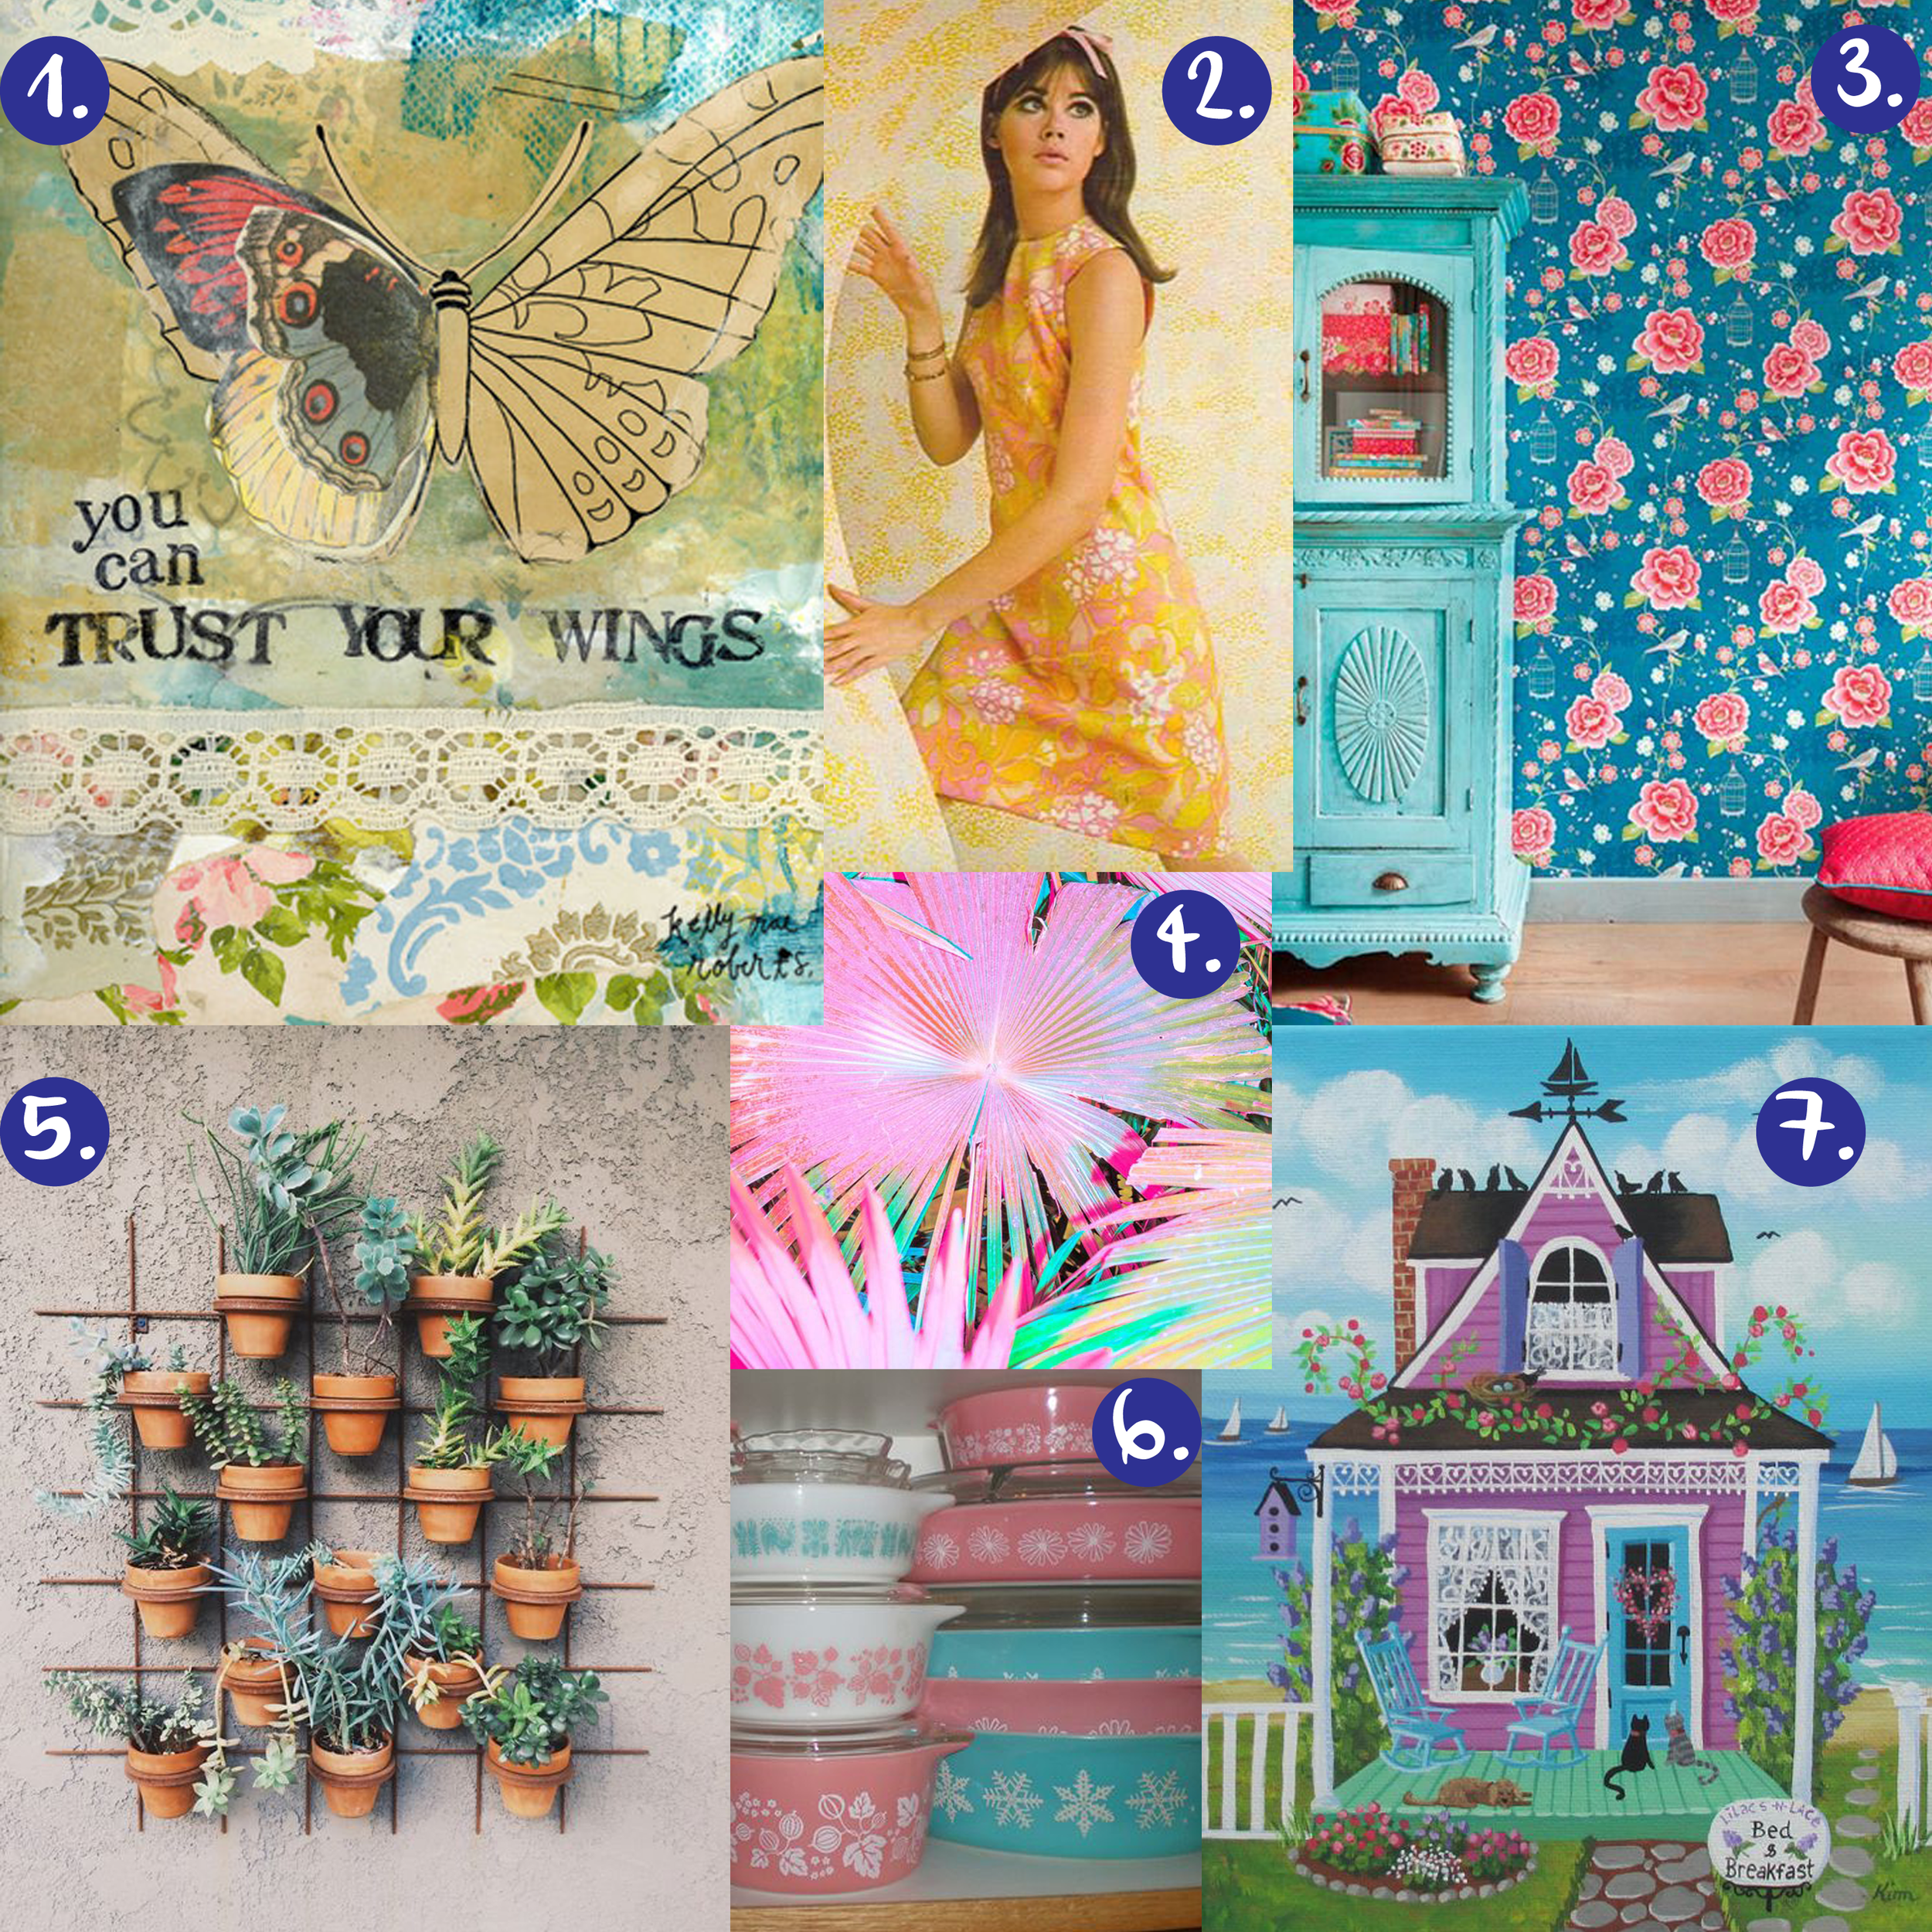 1. Kelly Rae Roberts art print   2. 60's print dress   3. rose wallpaper   4. neon photo   5. plant hanger   6. pyrex dishes   7. bed and breakfast art print